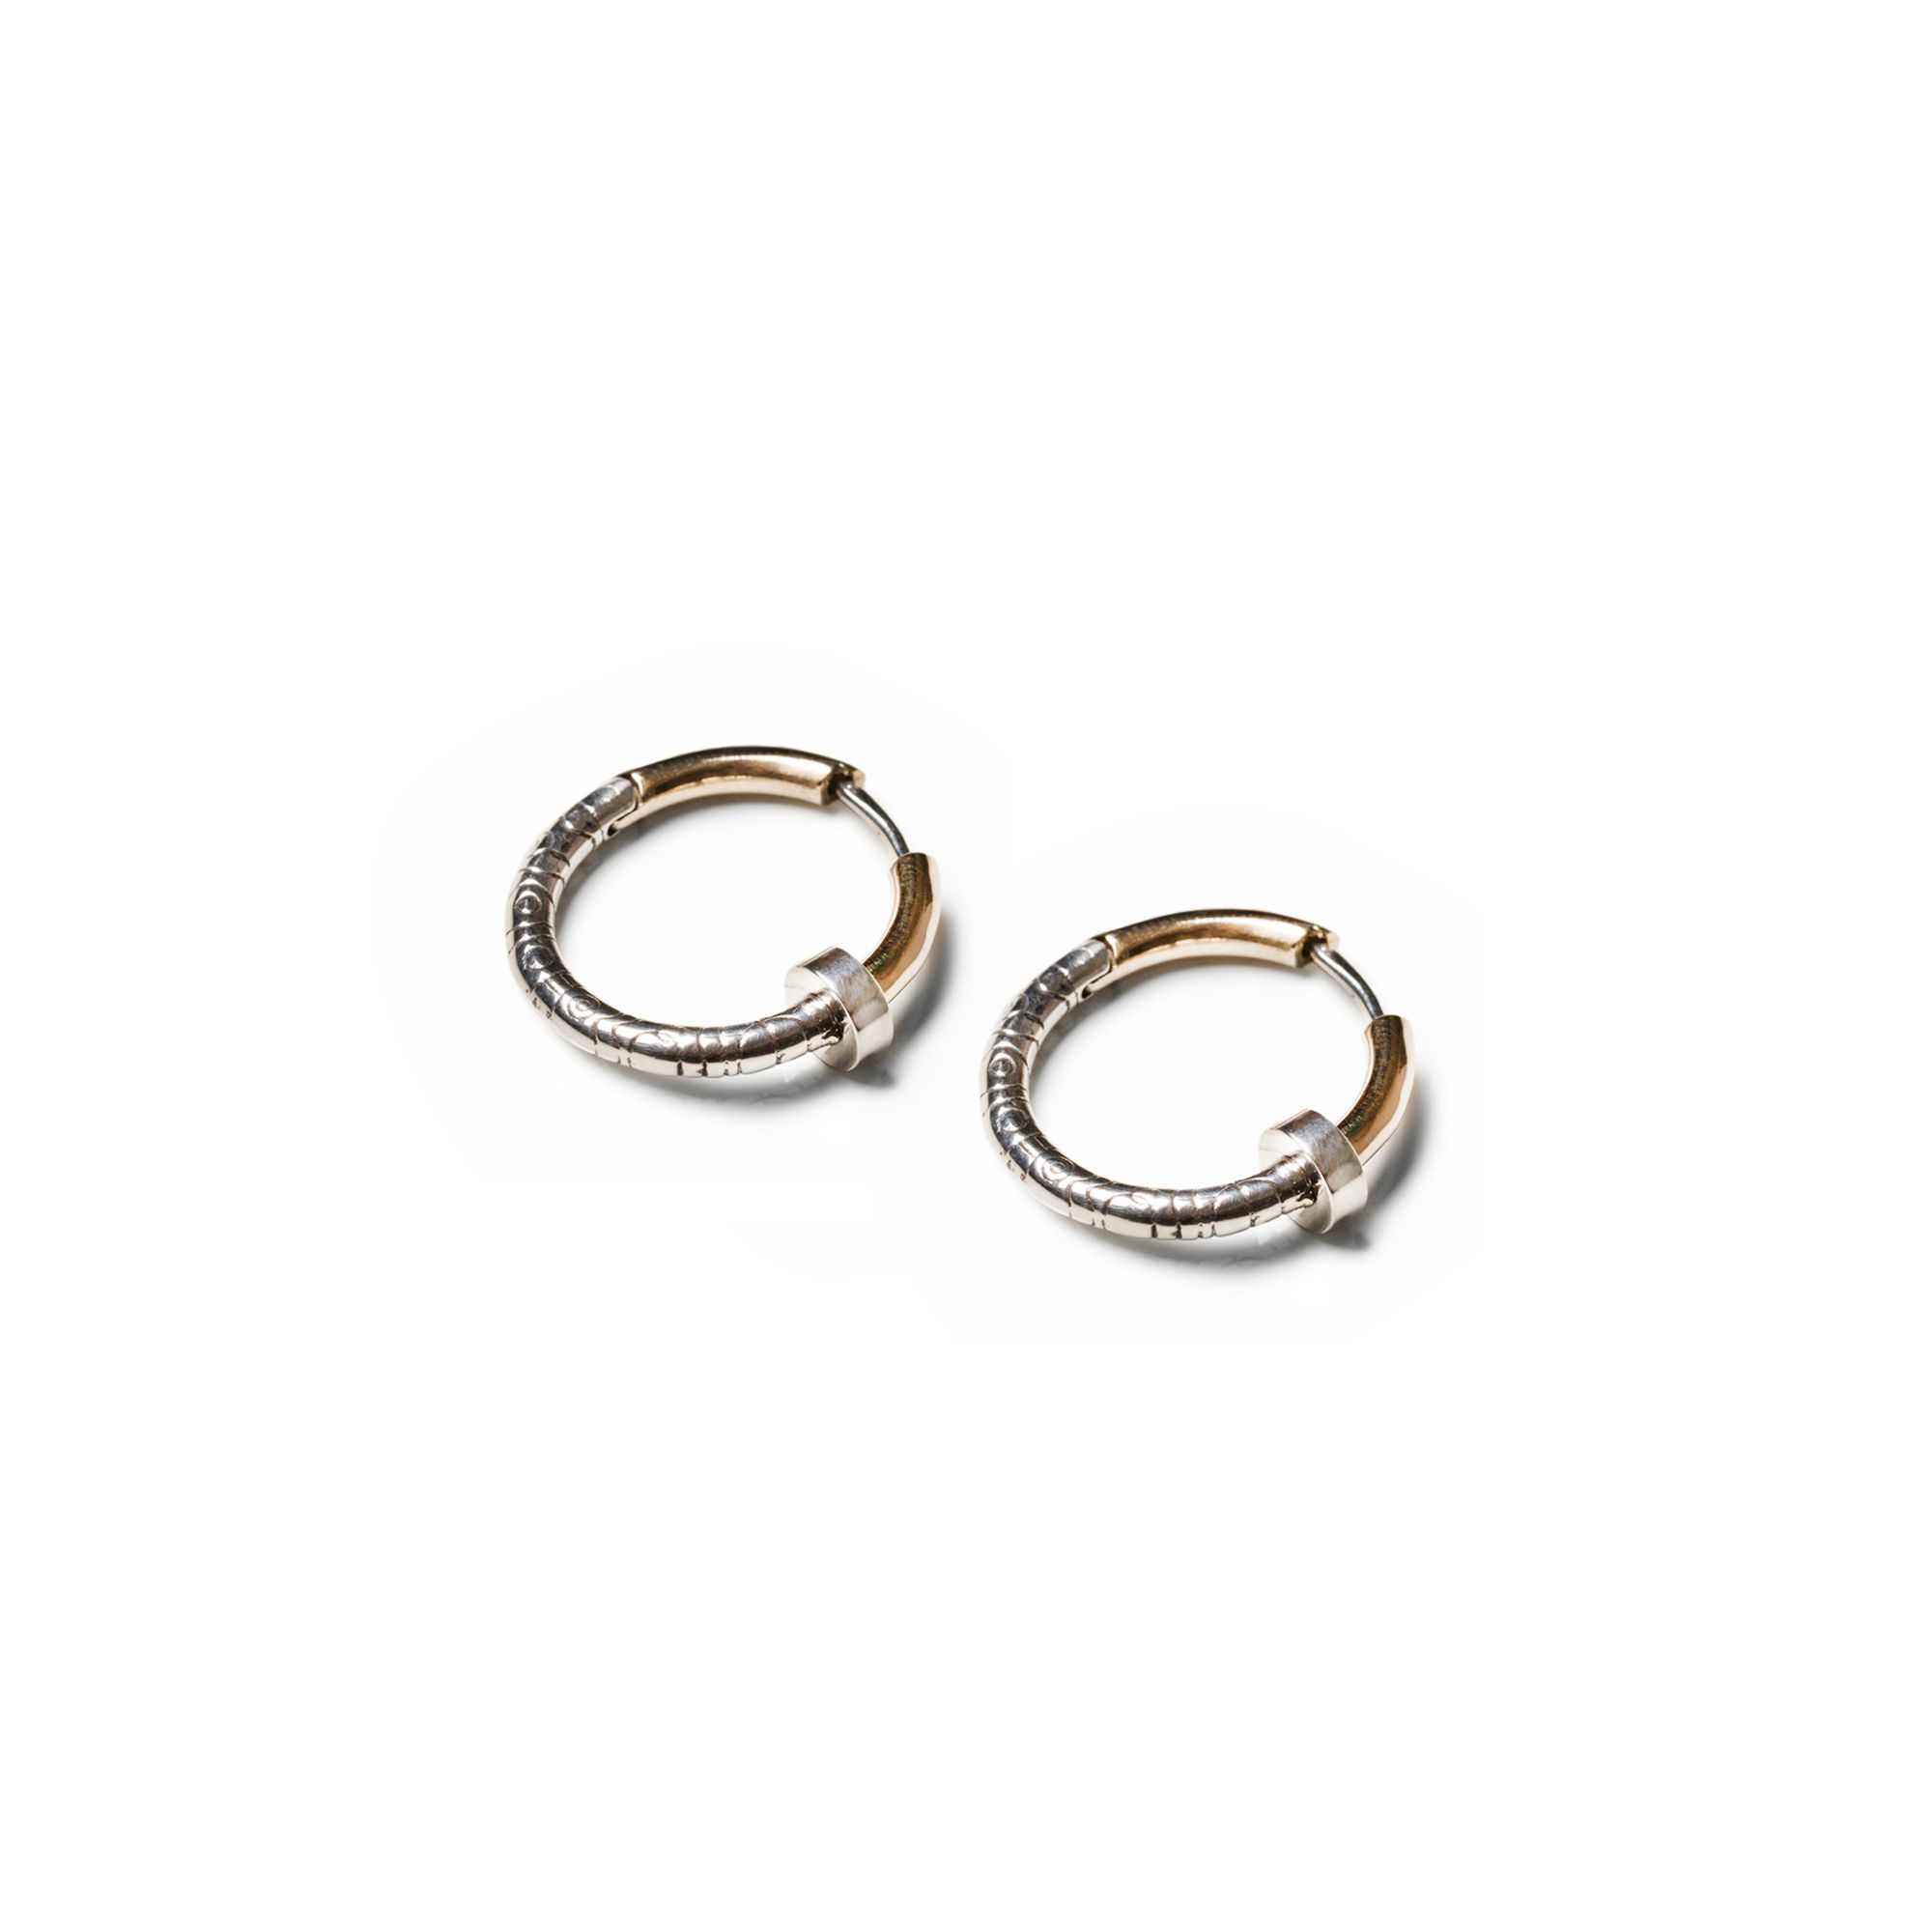 'Neon' hoops Earrings in silver and bronze